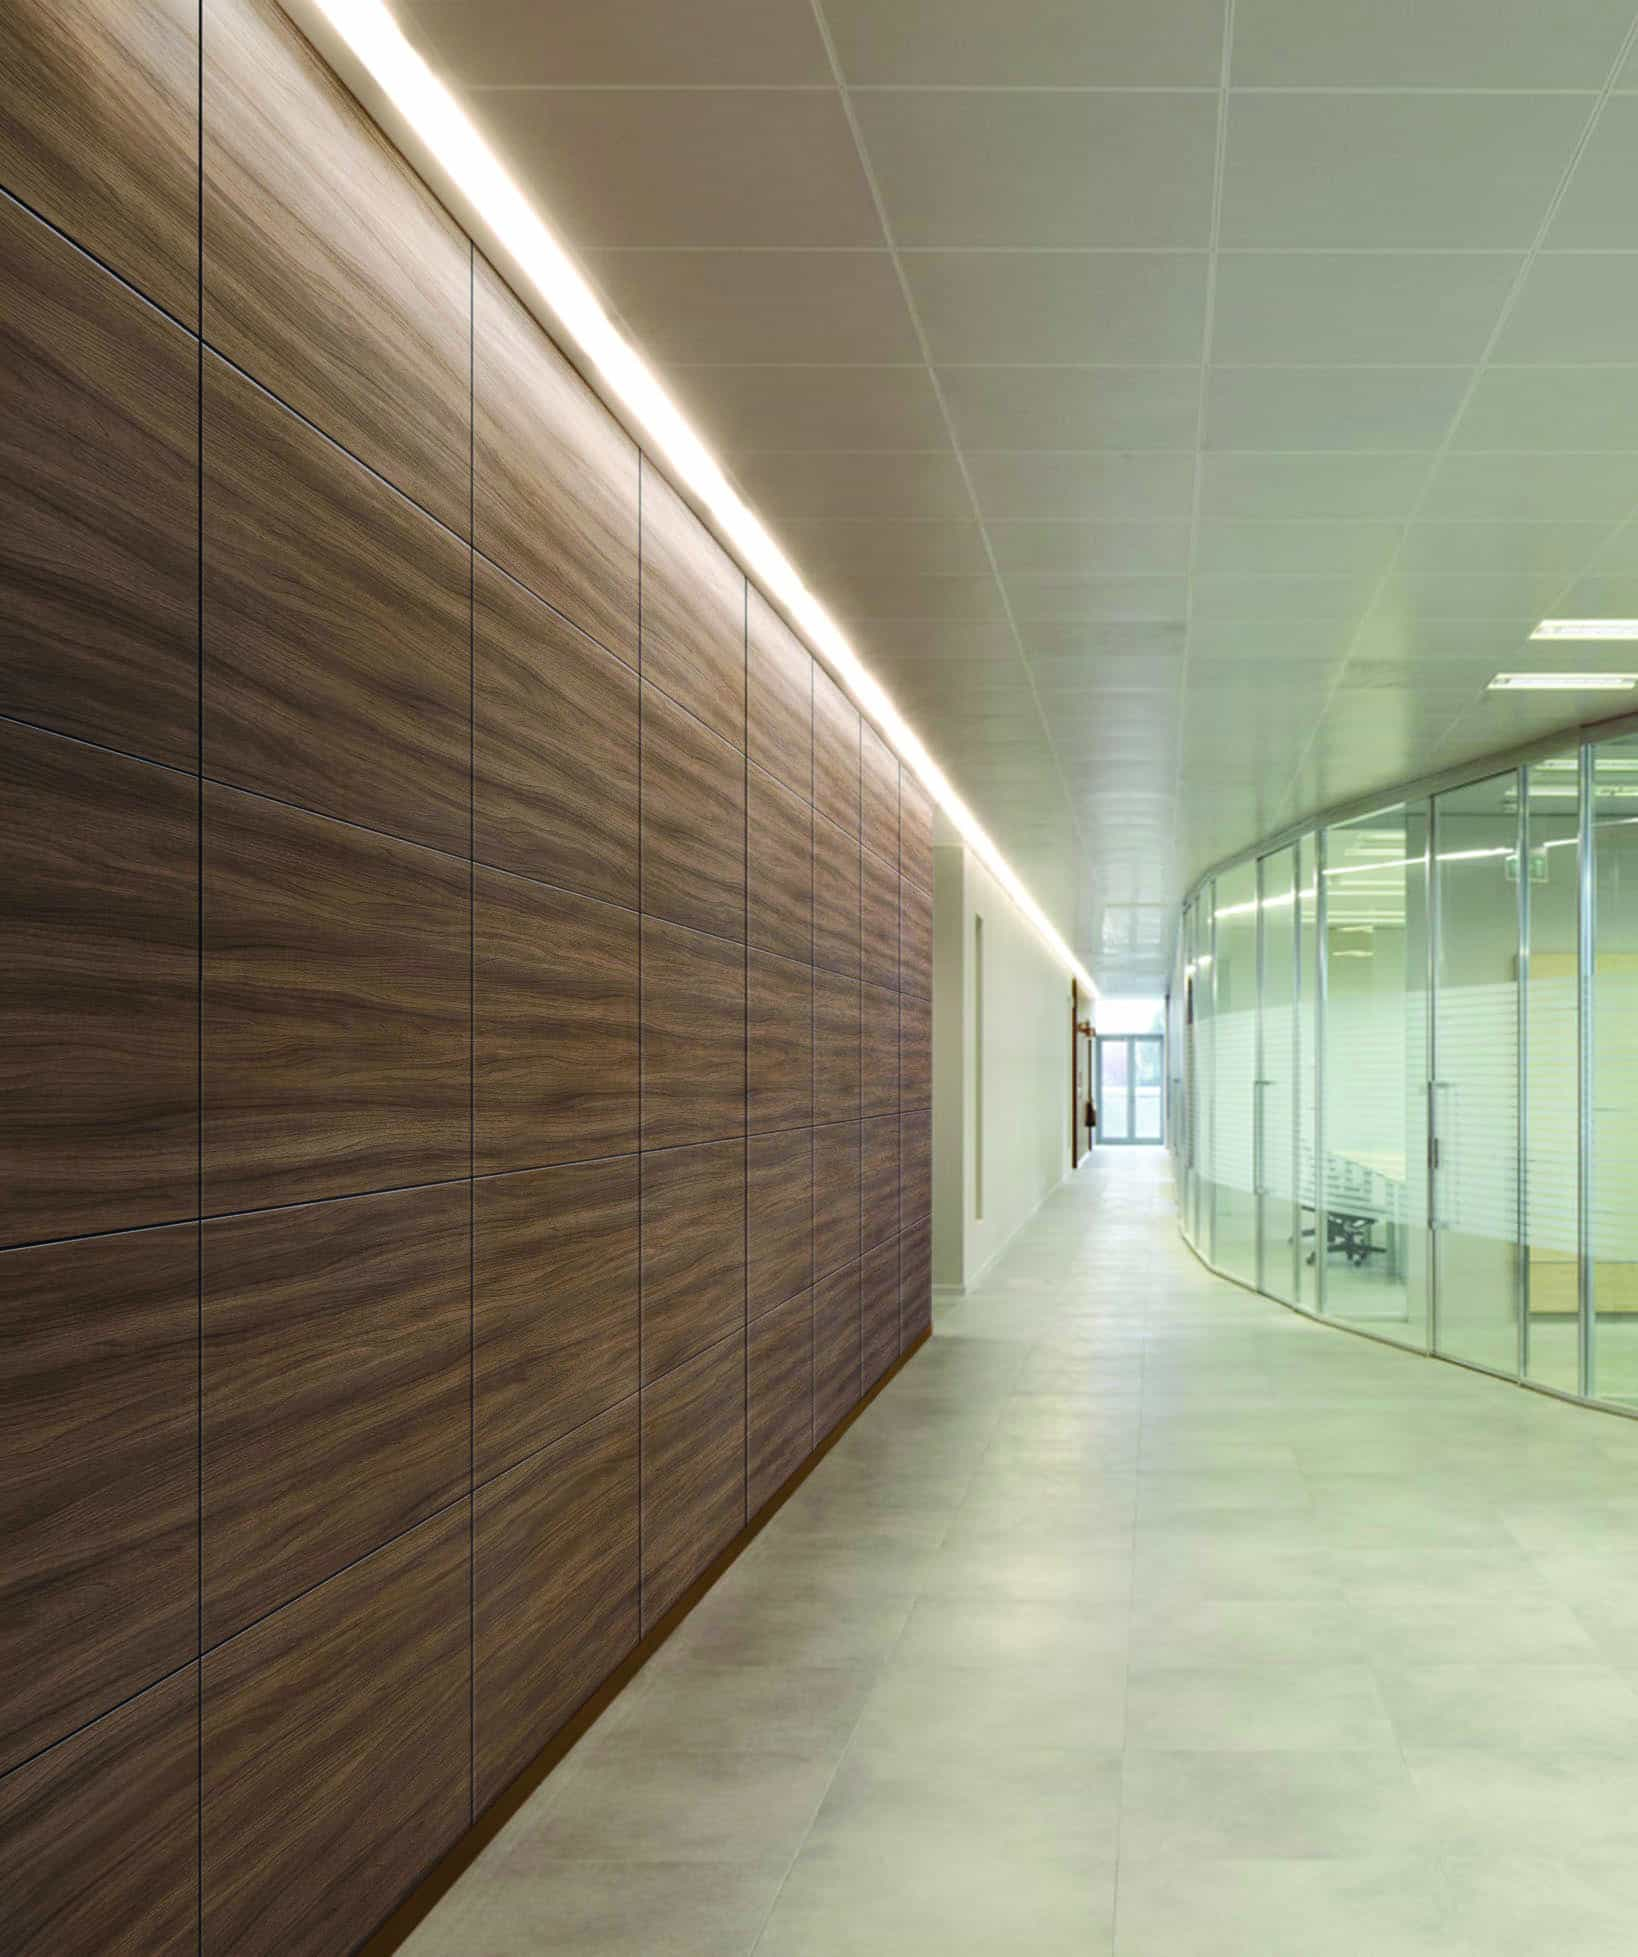 Corridor wall in wood textured vinyl